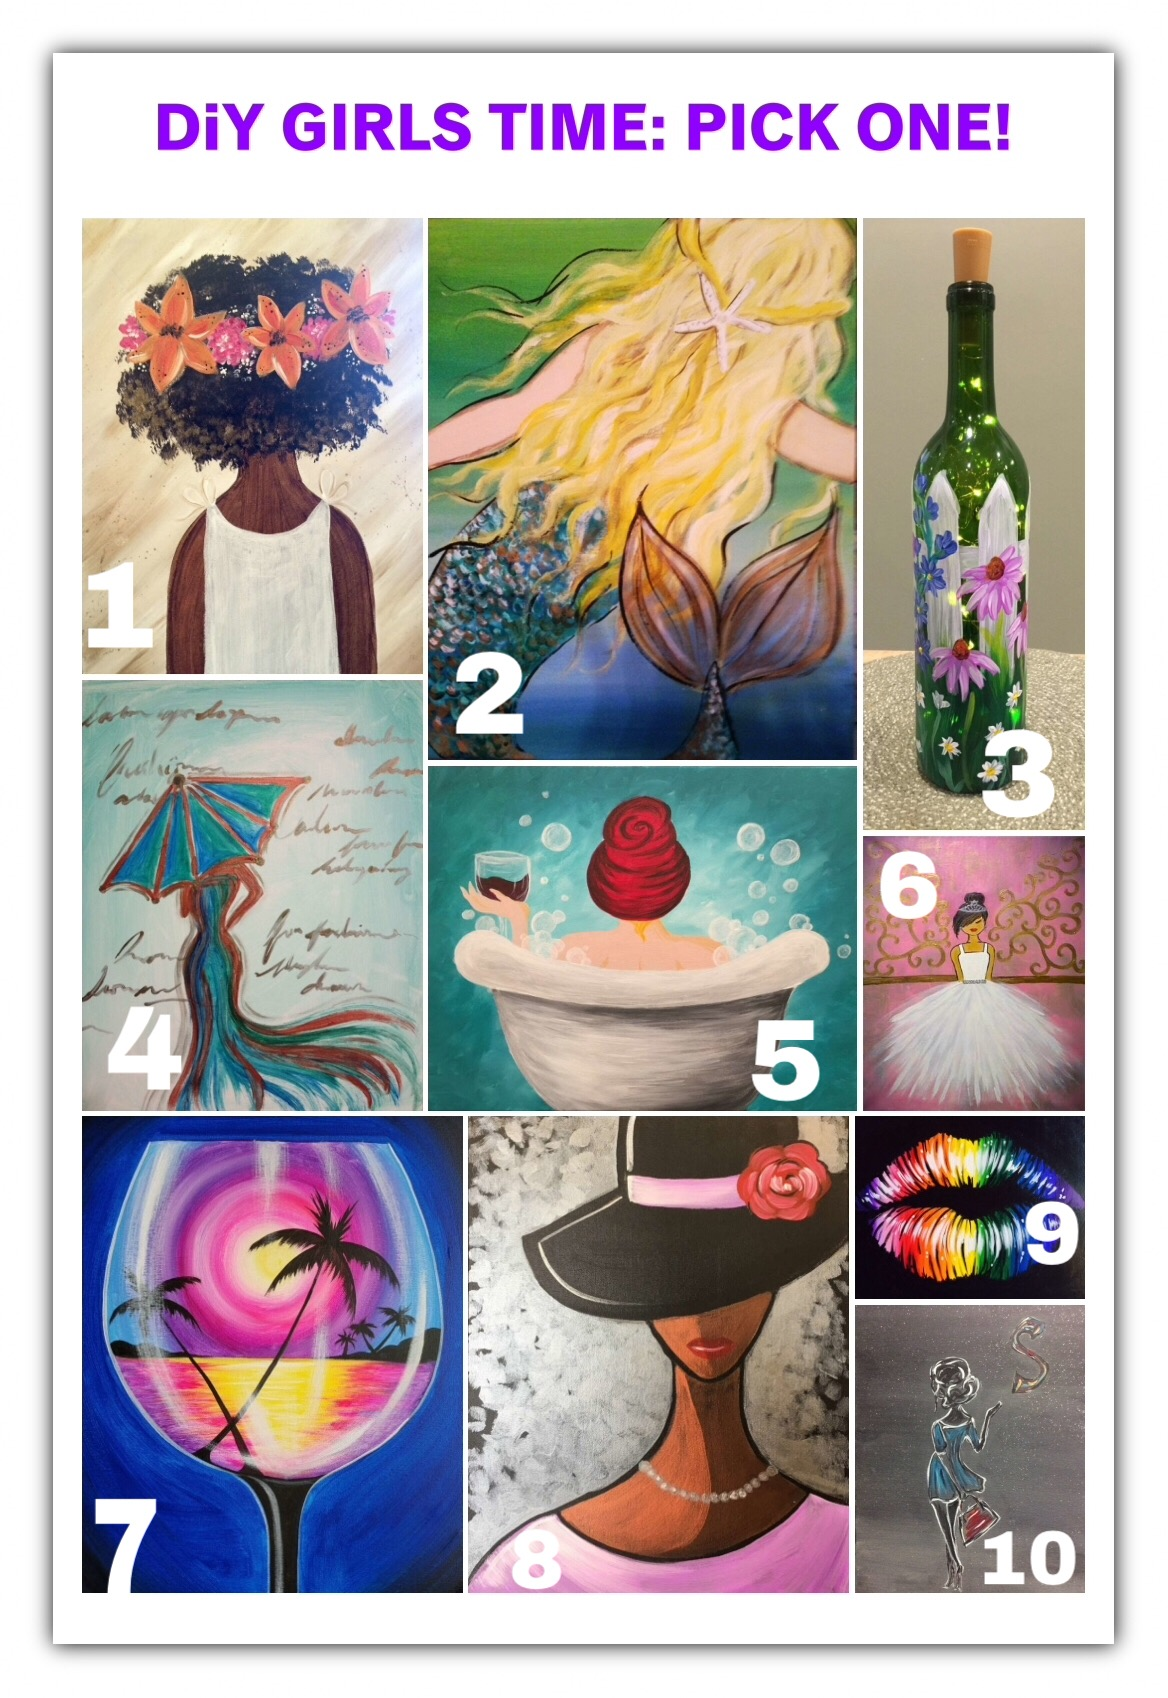 DiY Artful Fun: Pick One!